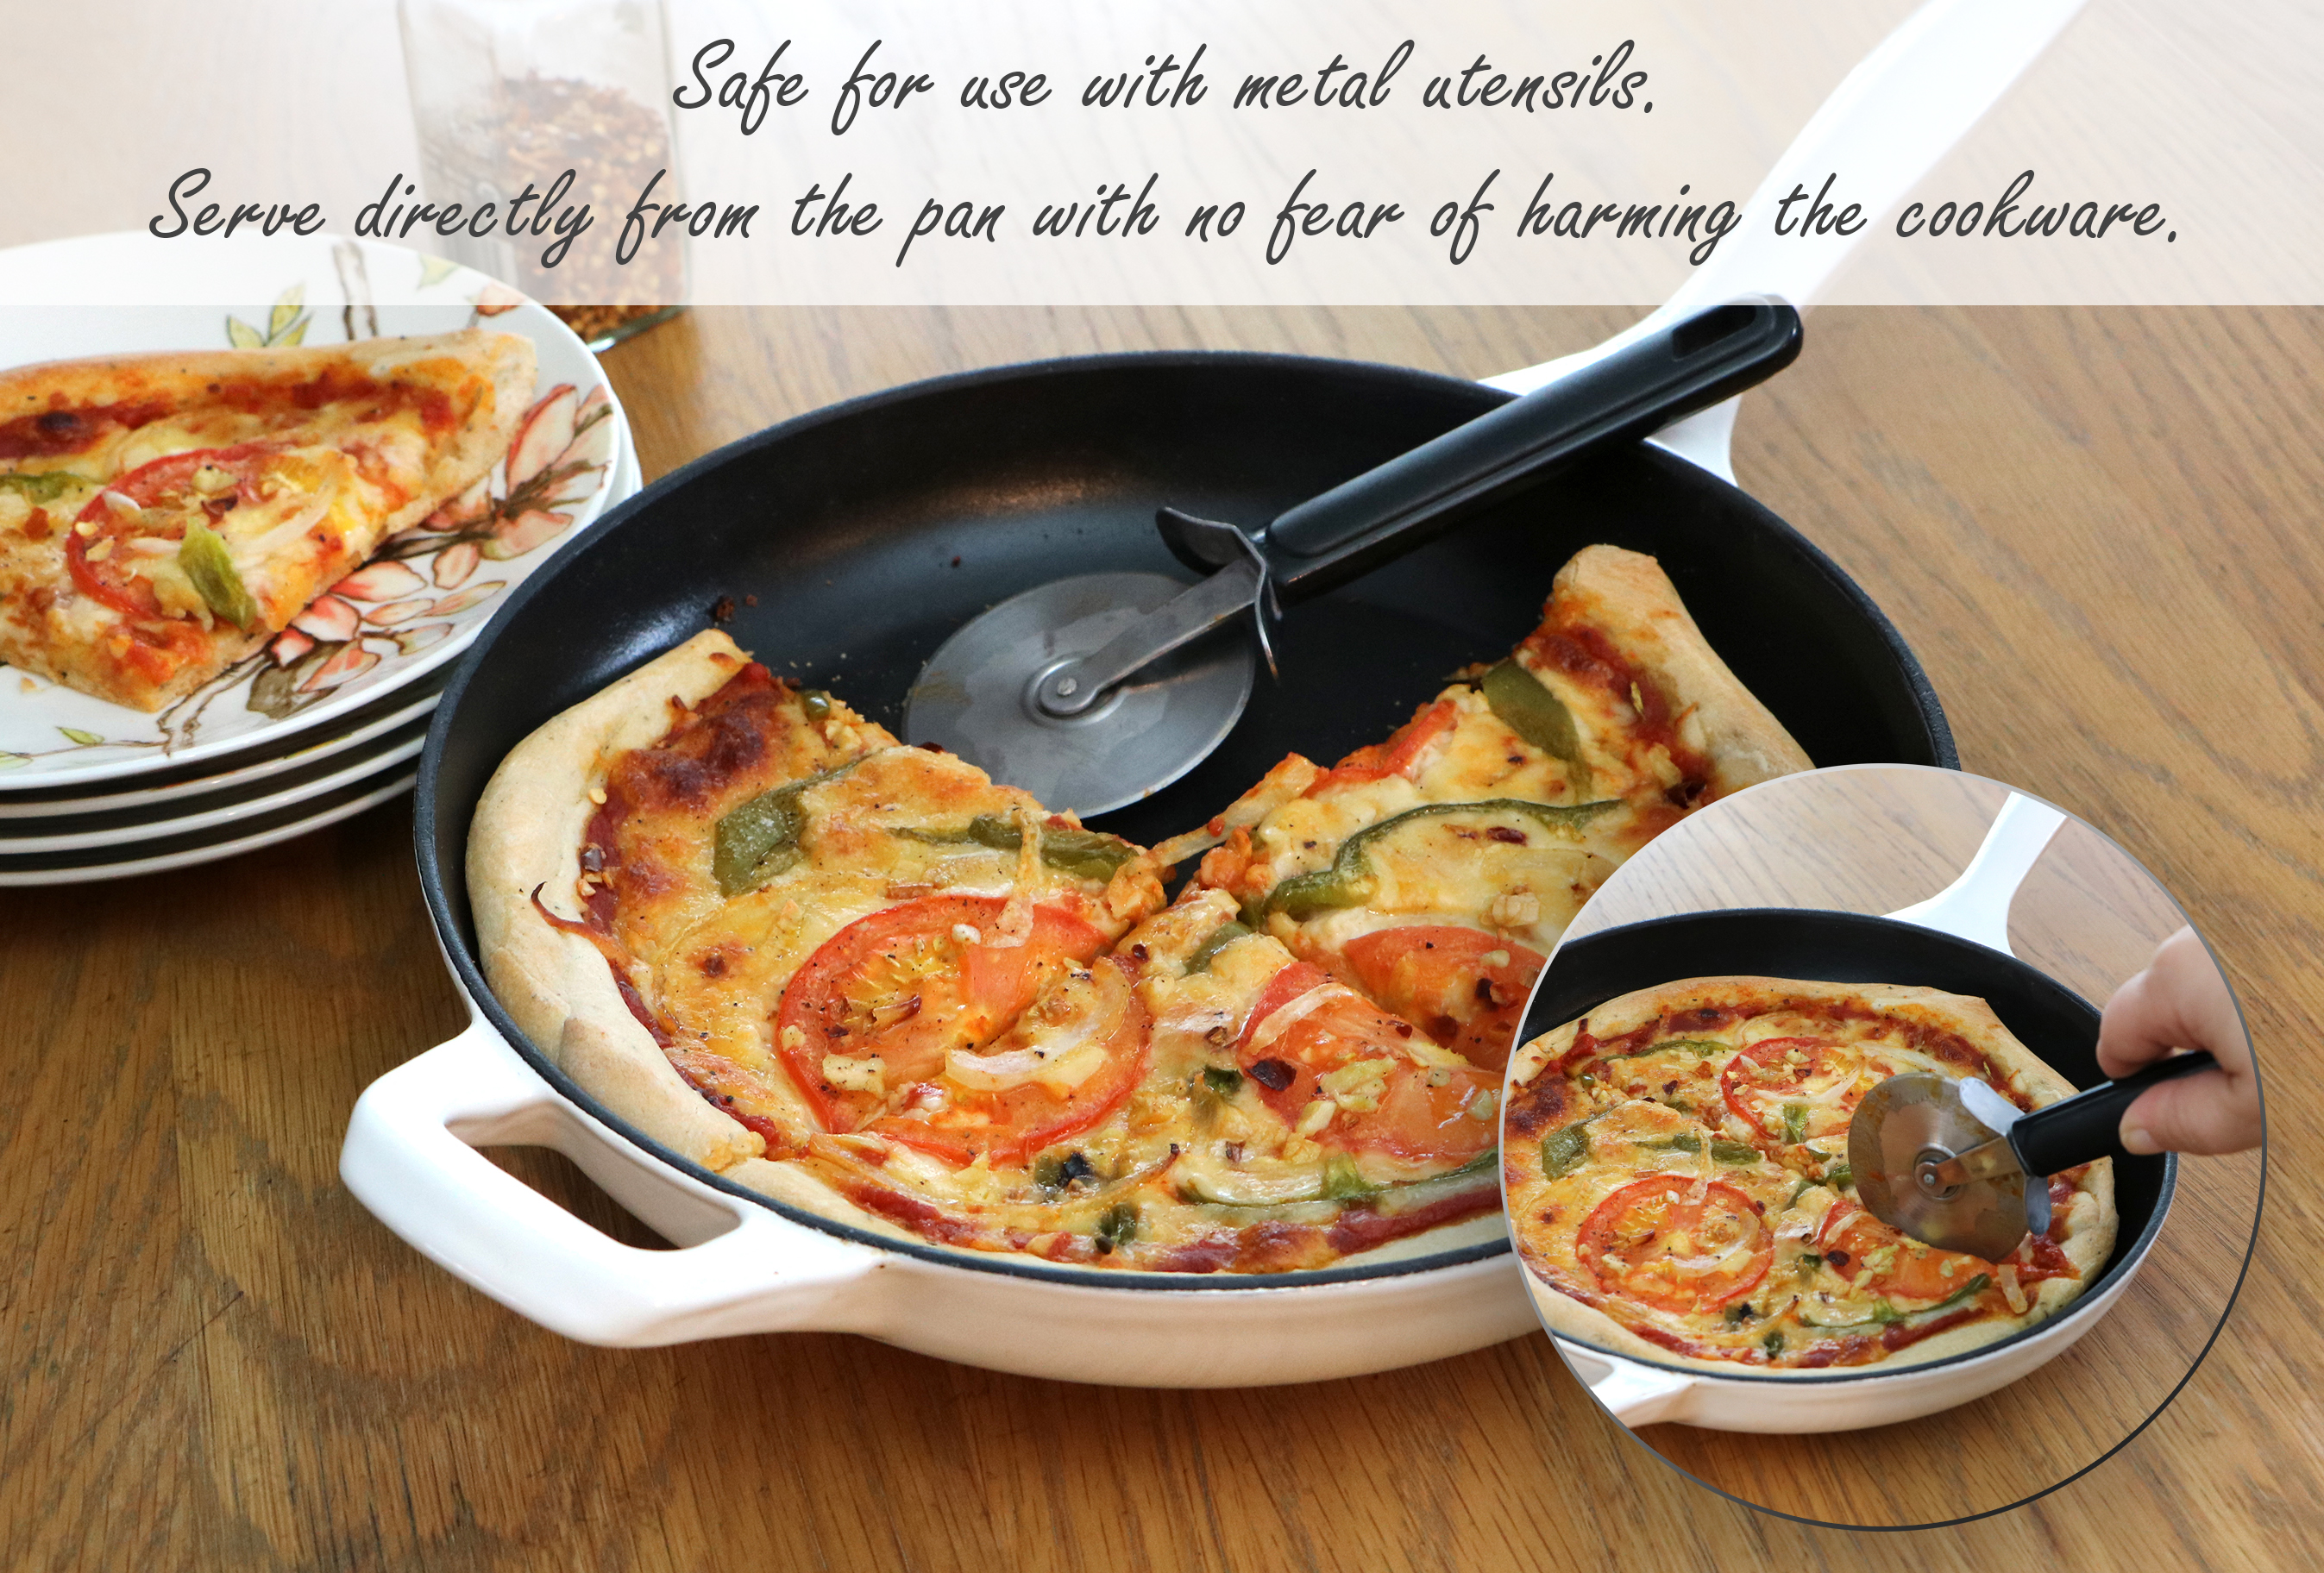 La Cuisine 10 In Cast Iron Skillet With Enamel Finish In